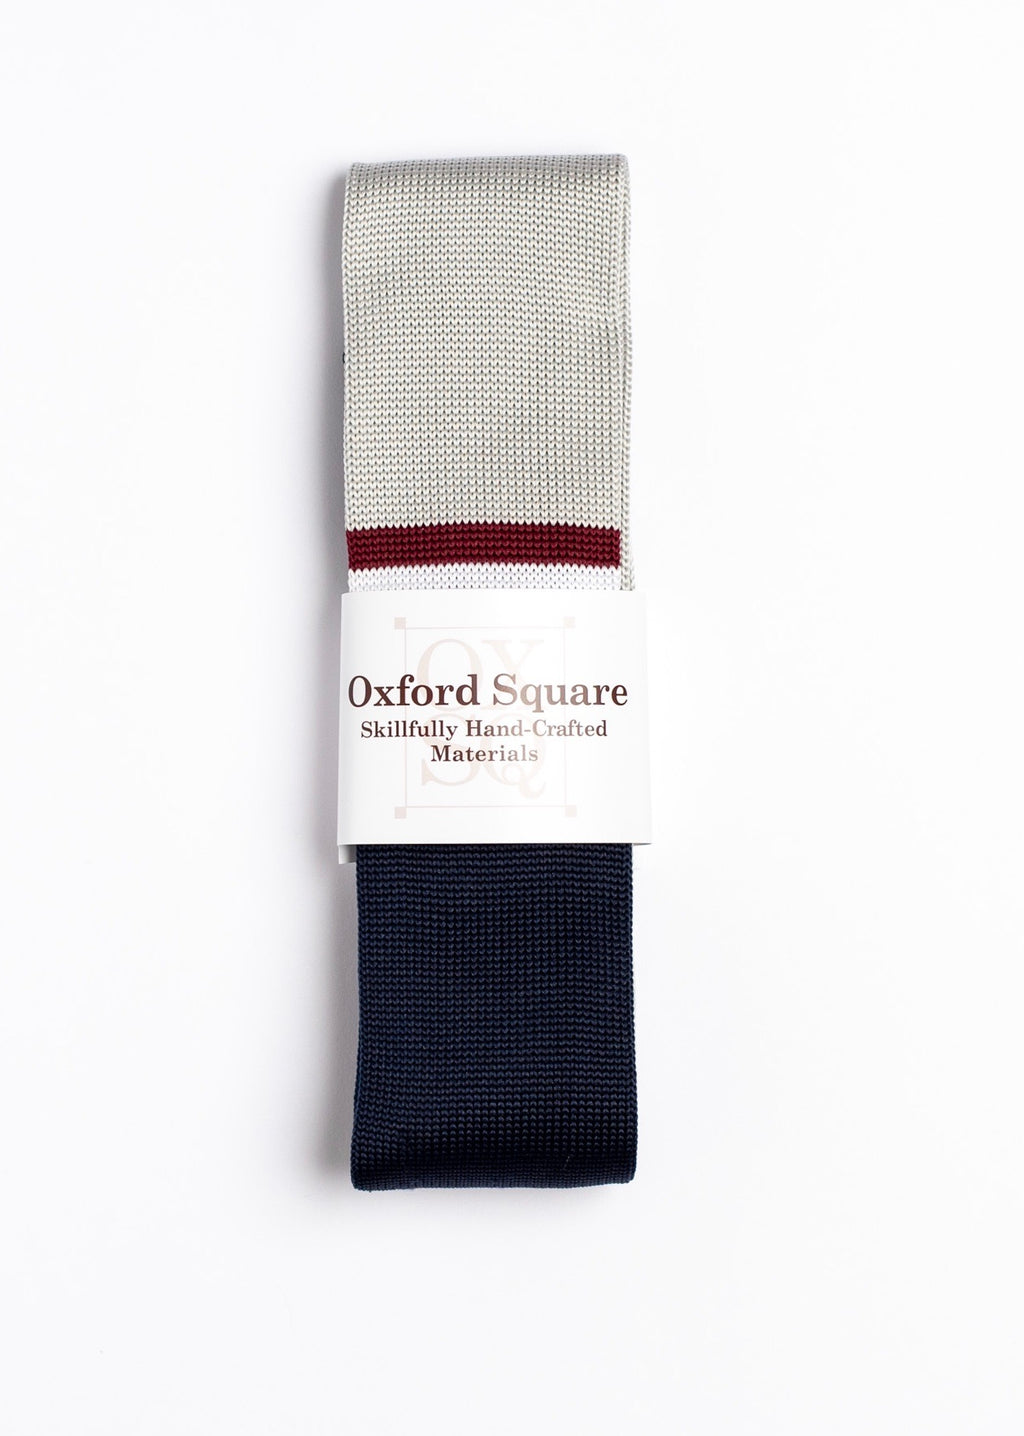 Gray, red and blue striped Knit Tie - Oxford Square